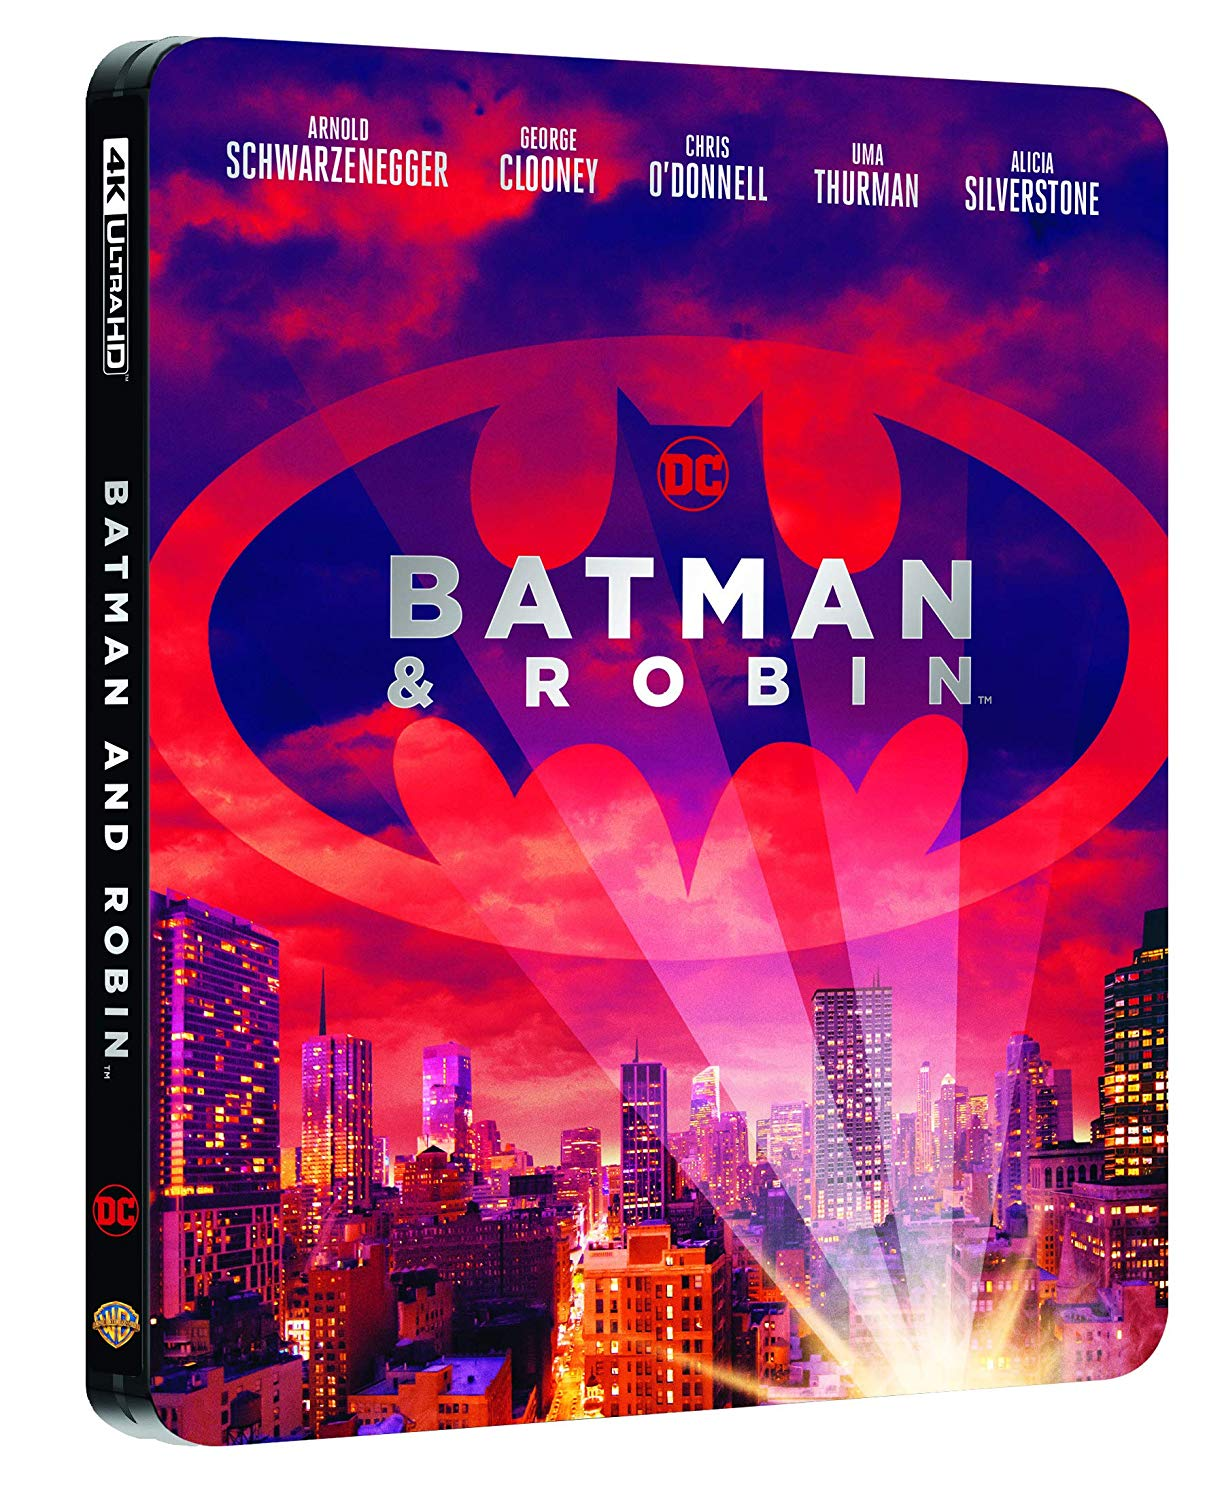 BATMAN & ROBIN STEELBOOK (4K ULTRA HD+BLU-RAY)